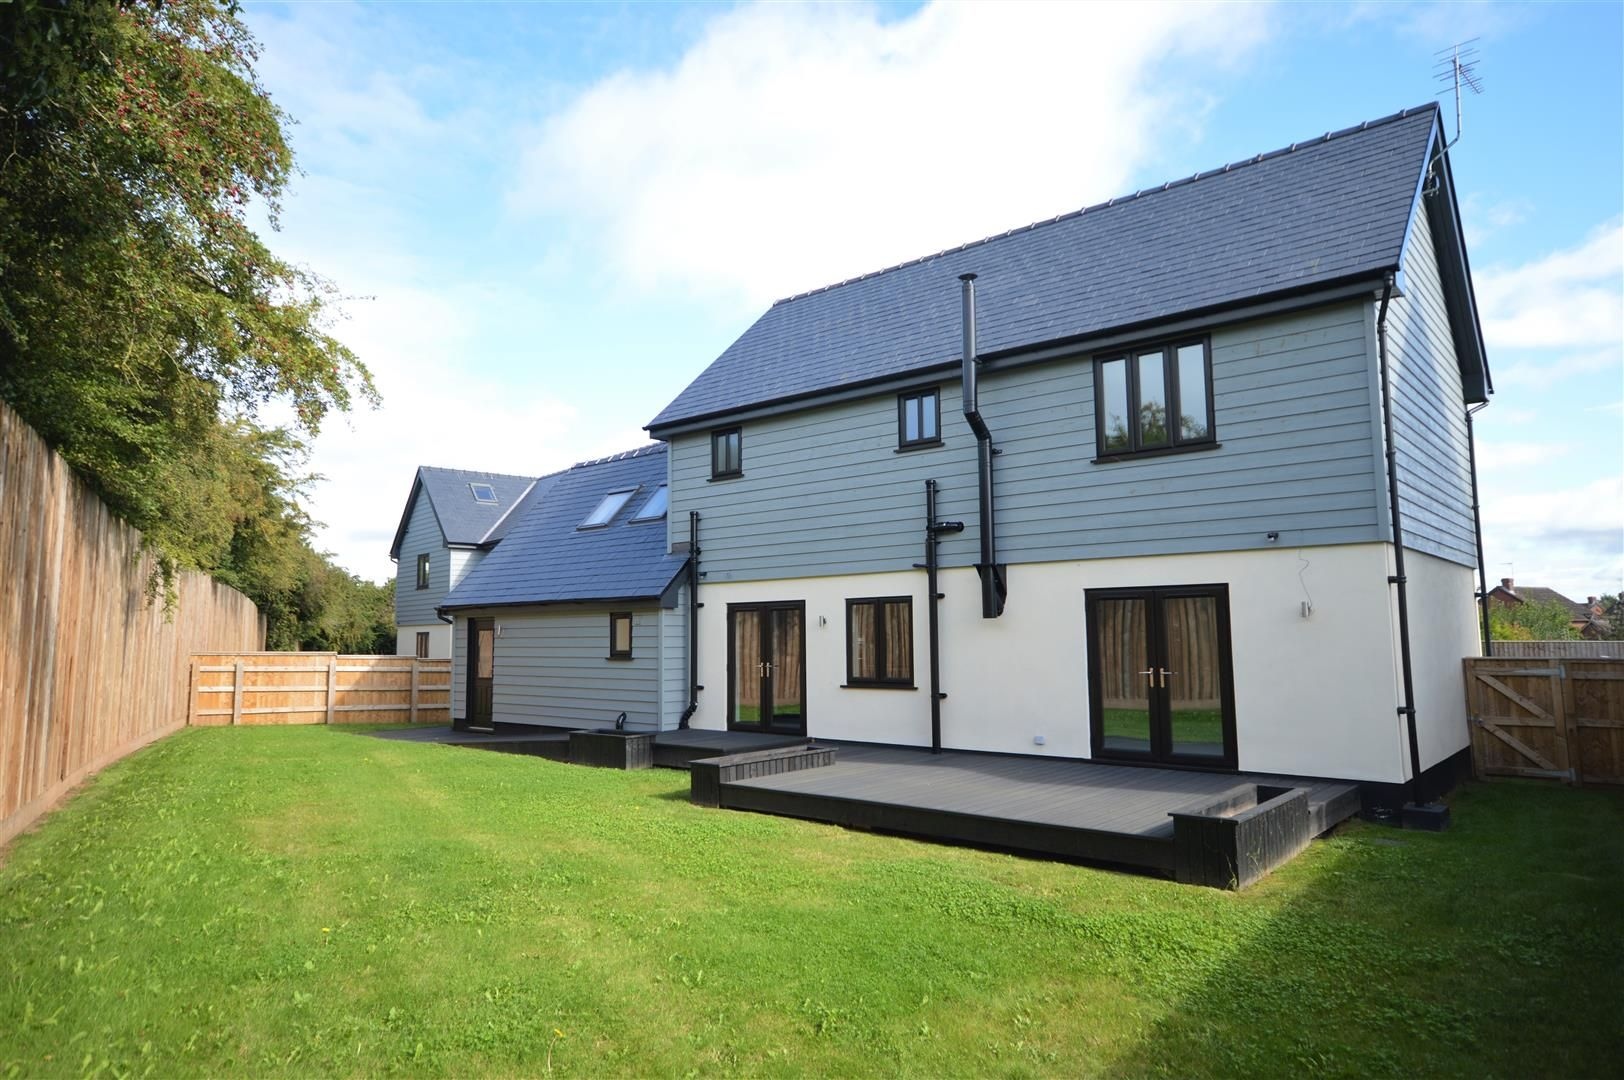 4 bed detached for sale in Brimfield  - Property Image 17